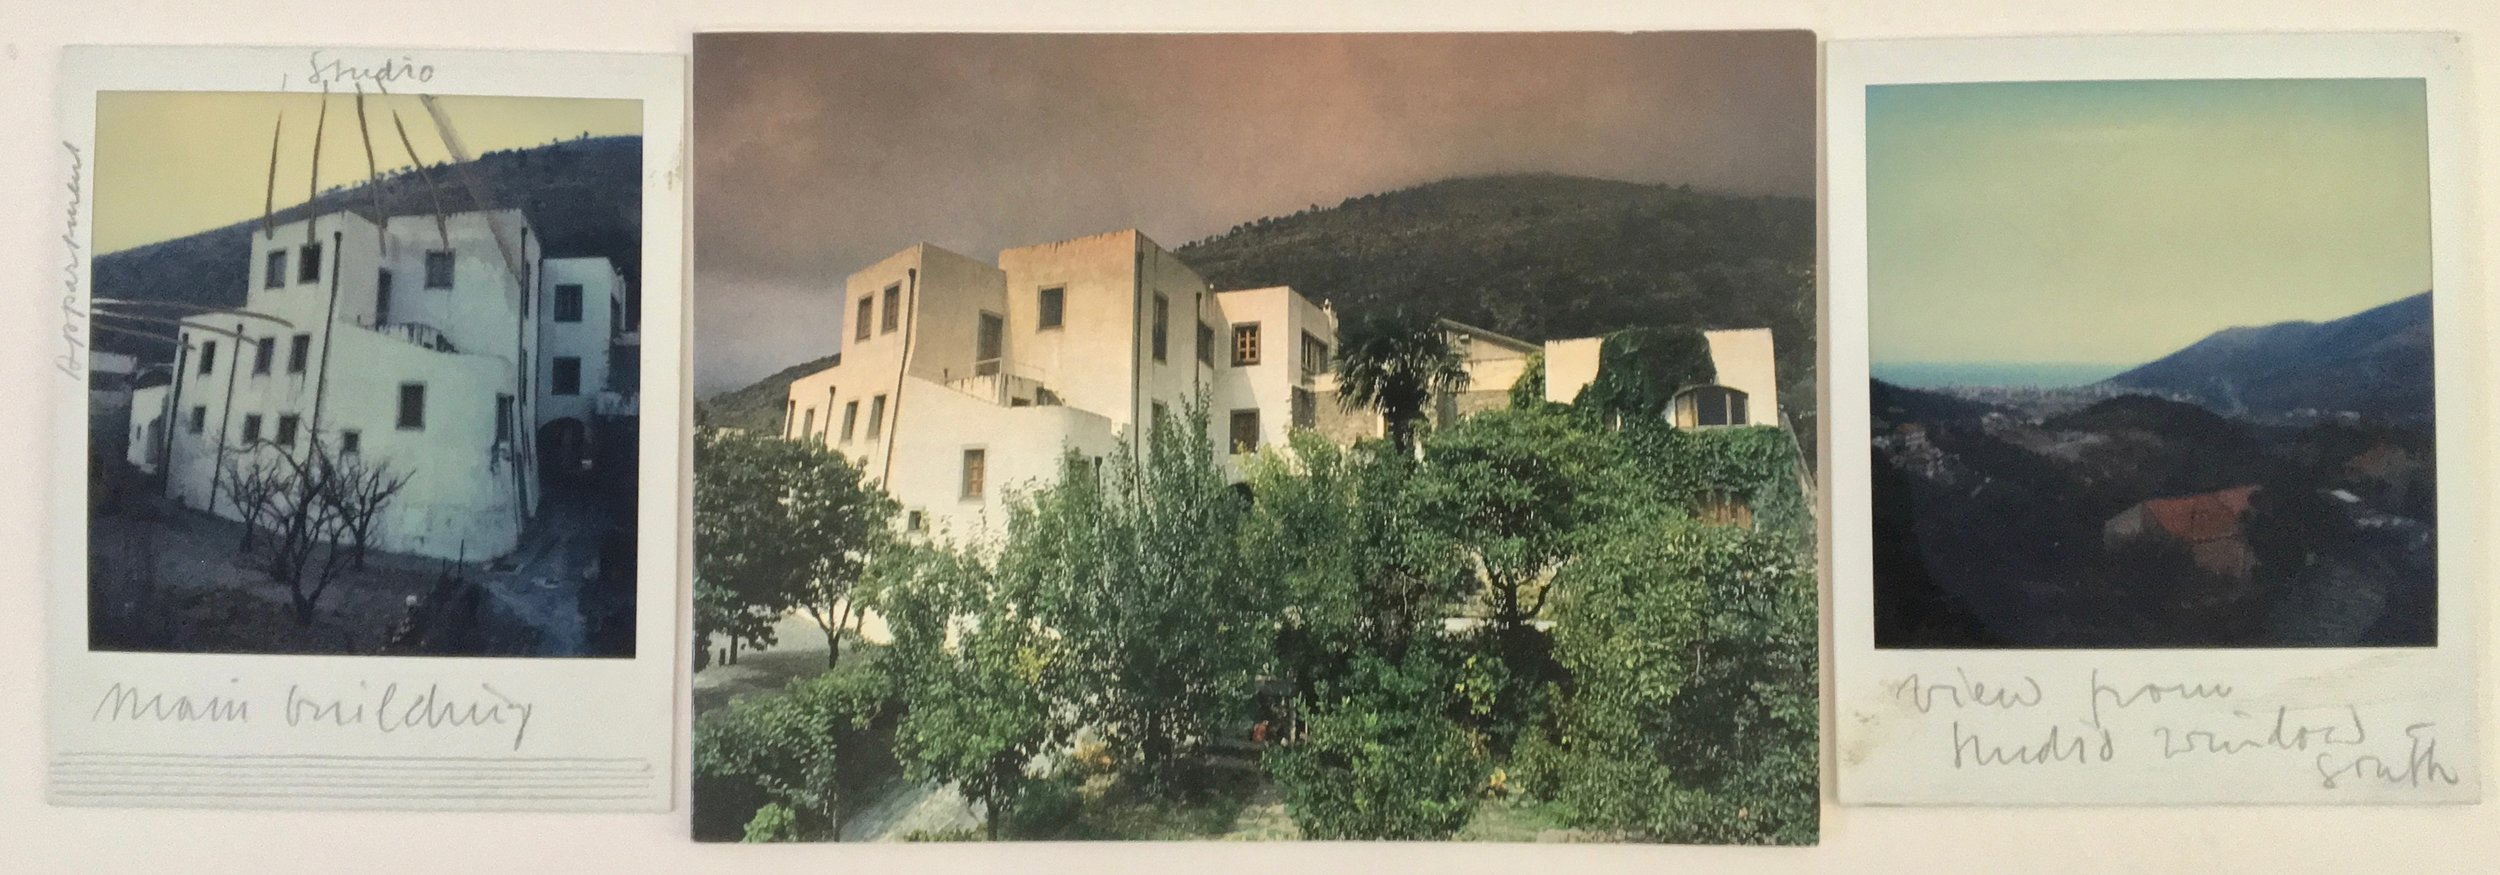 Kocherscheidt's studio in Bolsano, Italy, c.1980. Polaroids taken by Kocherscheidt with hand written notes, showing the atelier and apartments and the south view from the atelier's window.